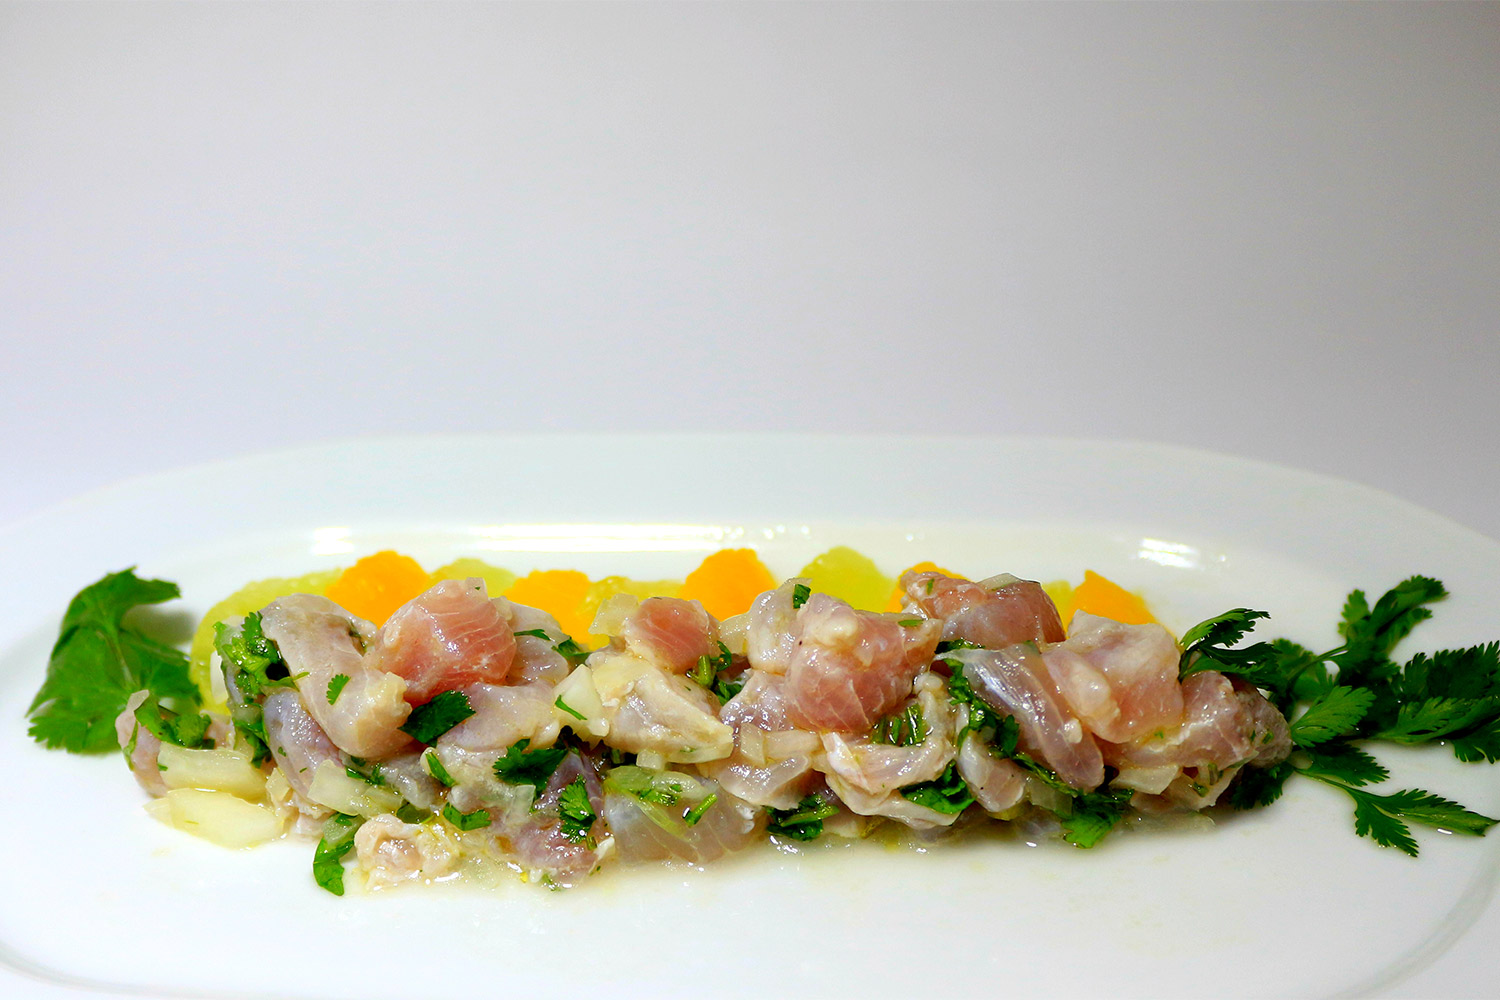 Fish ceviche with tequila hispanic kitchen hispanic for Fish for ceviche